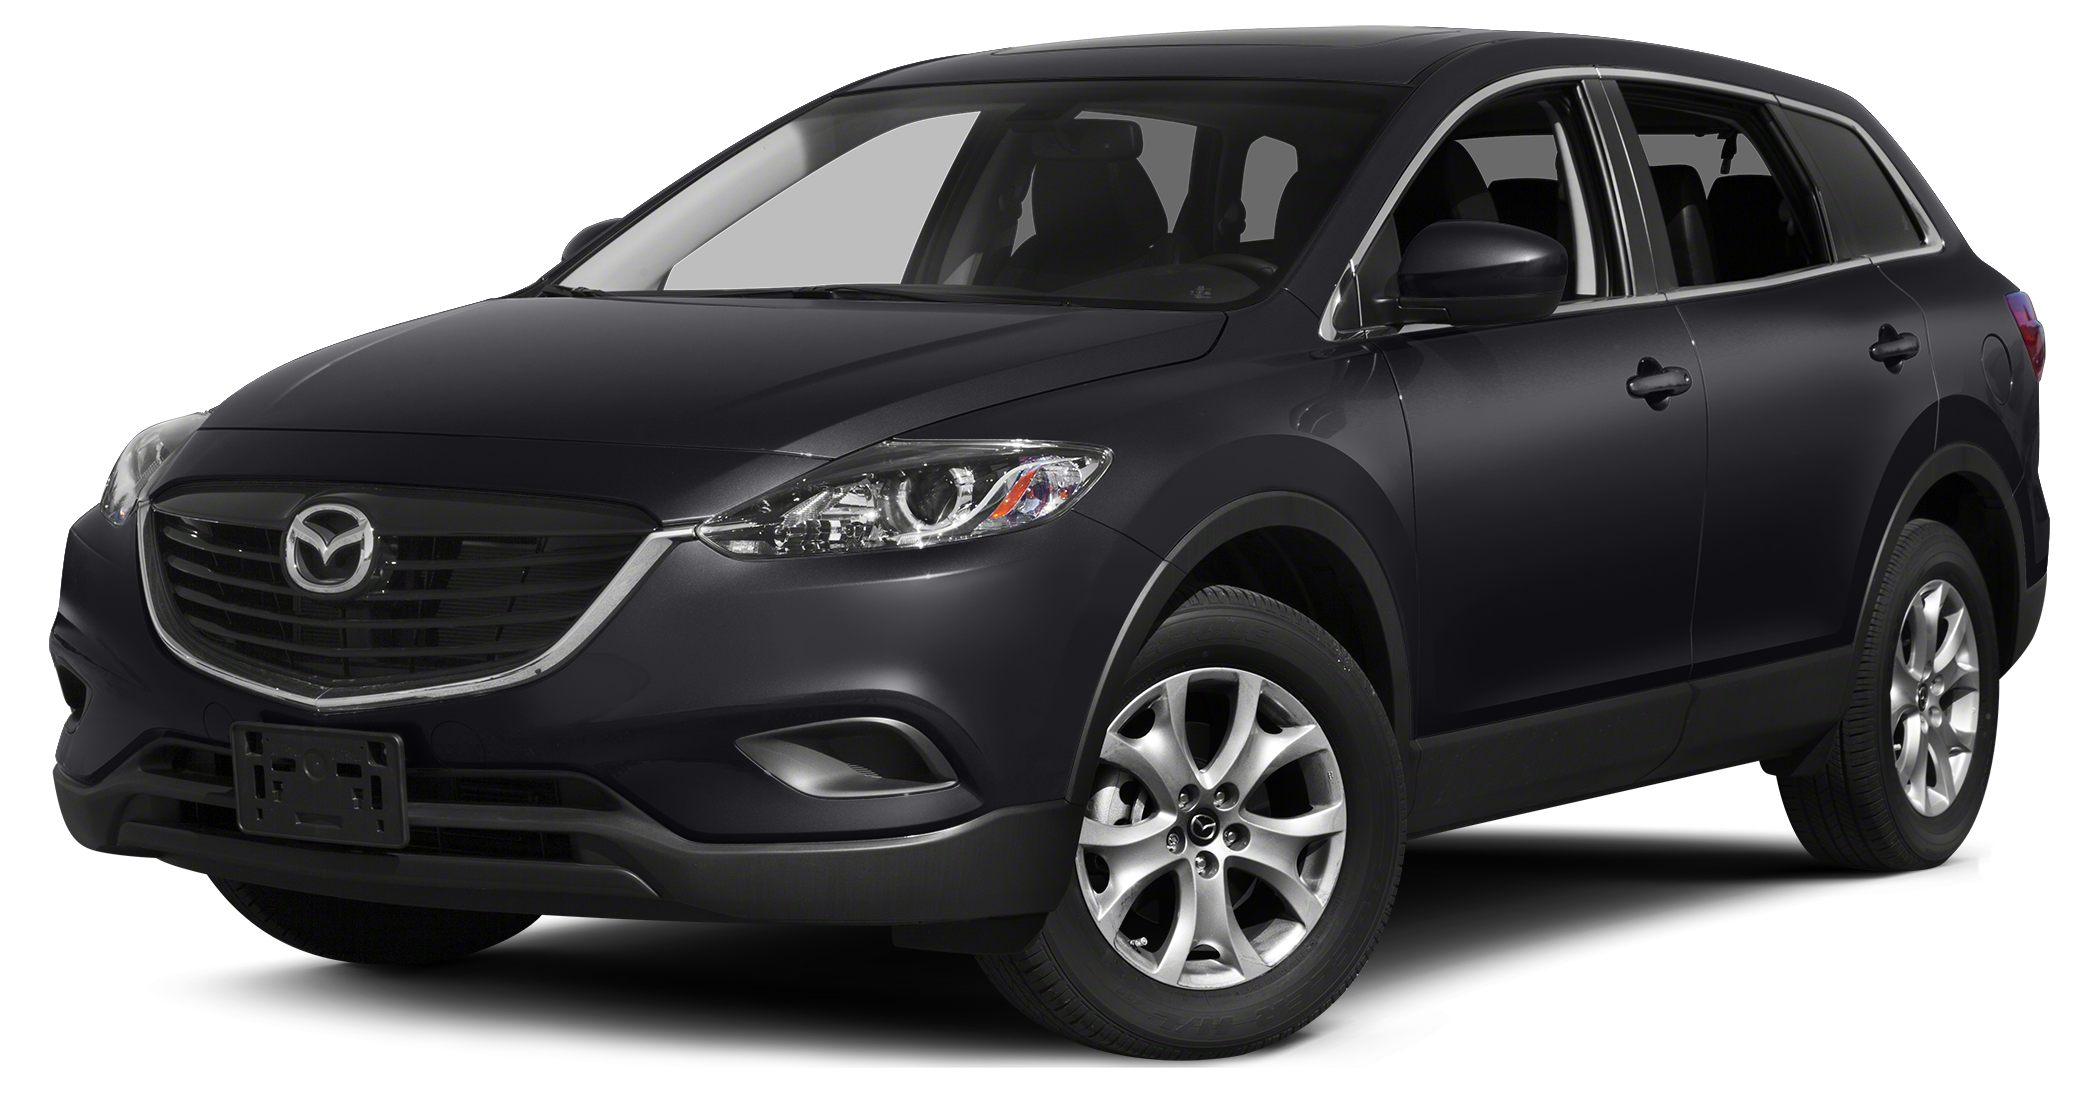 2013 Mazda CX-9 Sport Mazda Memorial Day Sales Event going on NOW Announcing Sport Mazdas LIFET